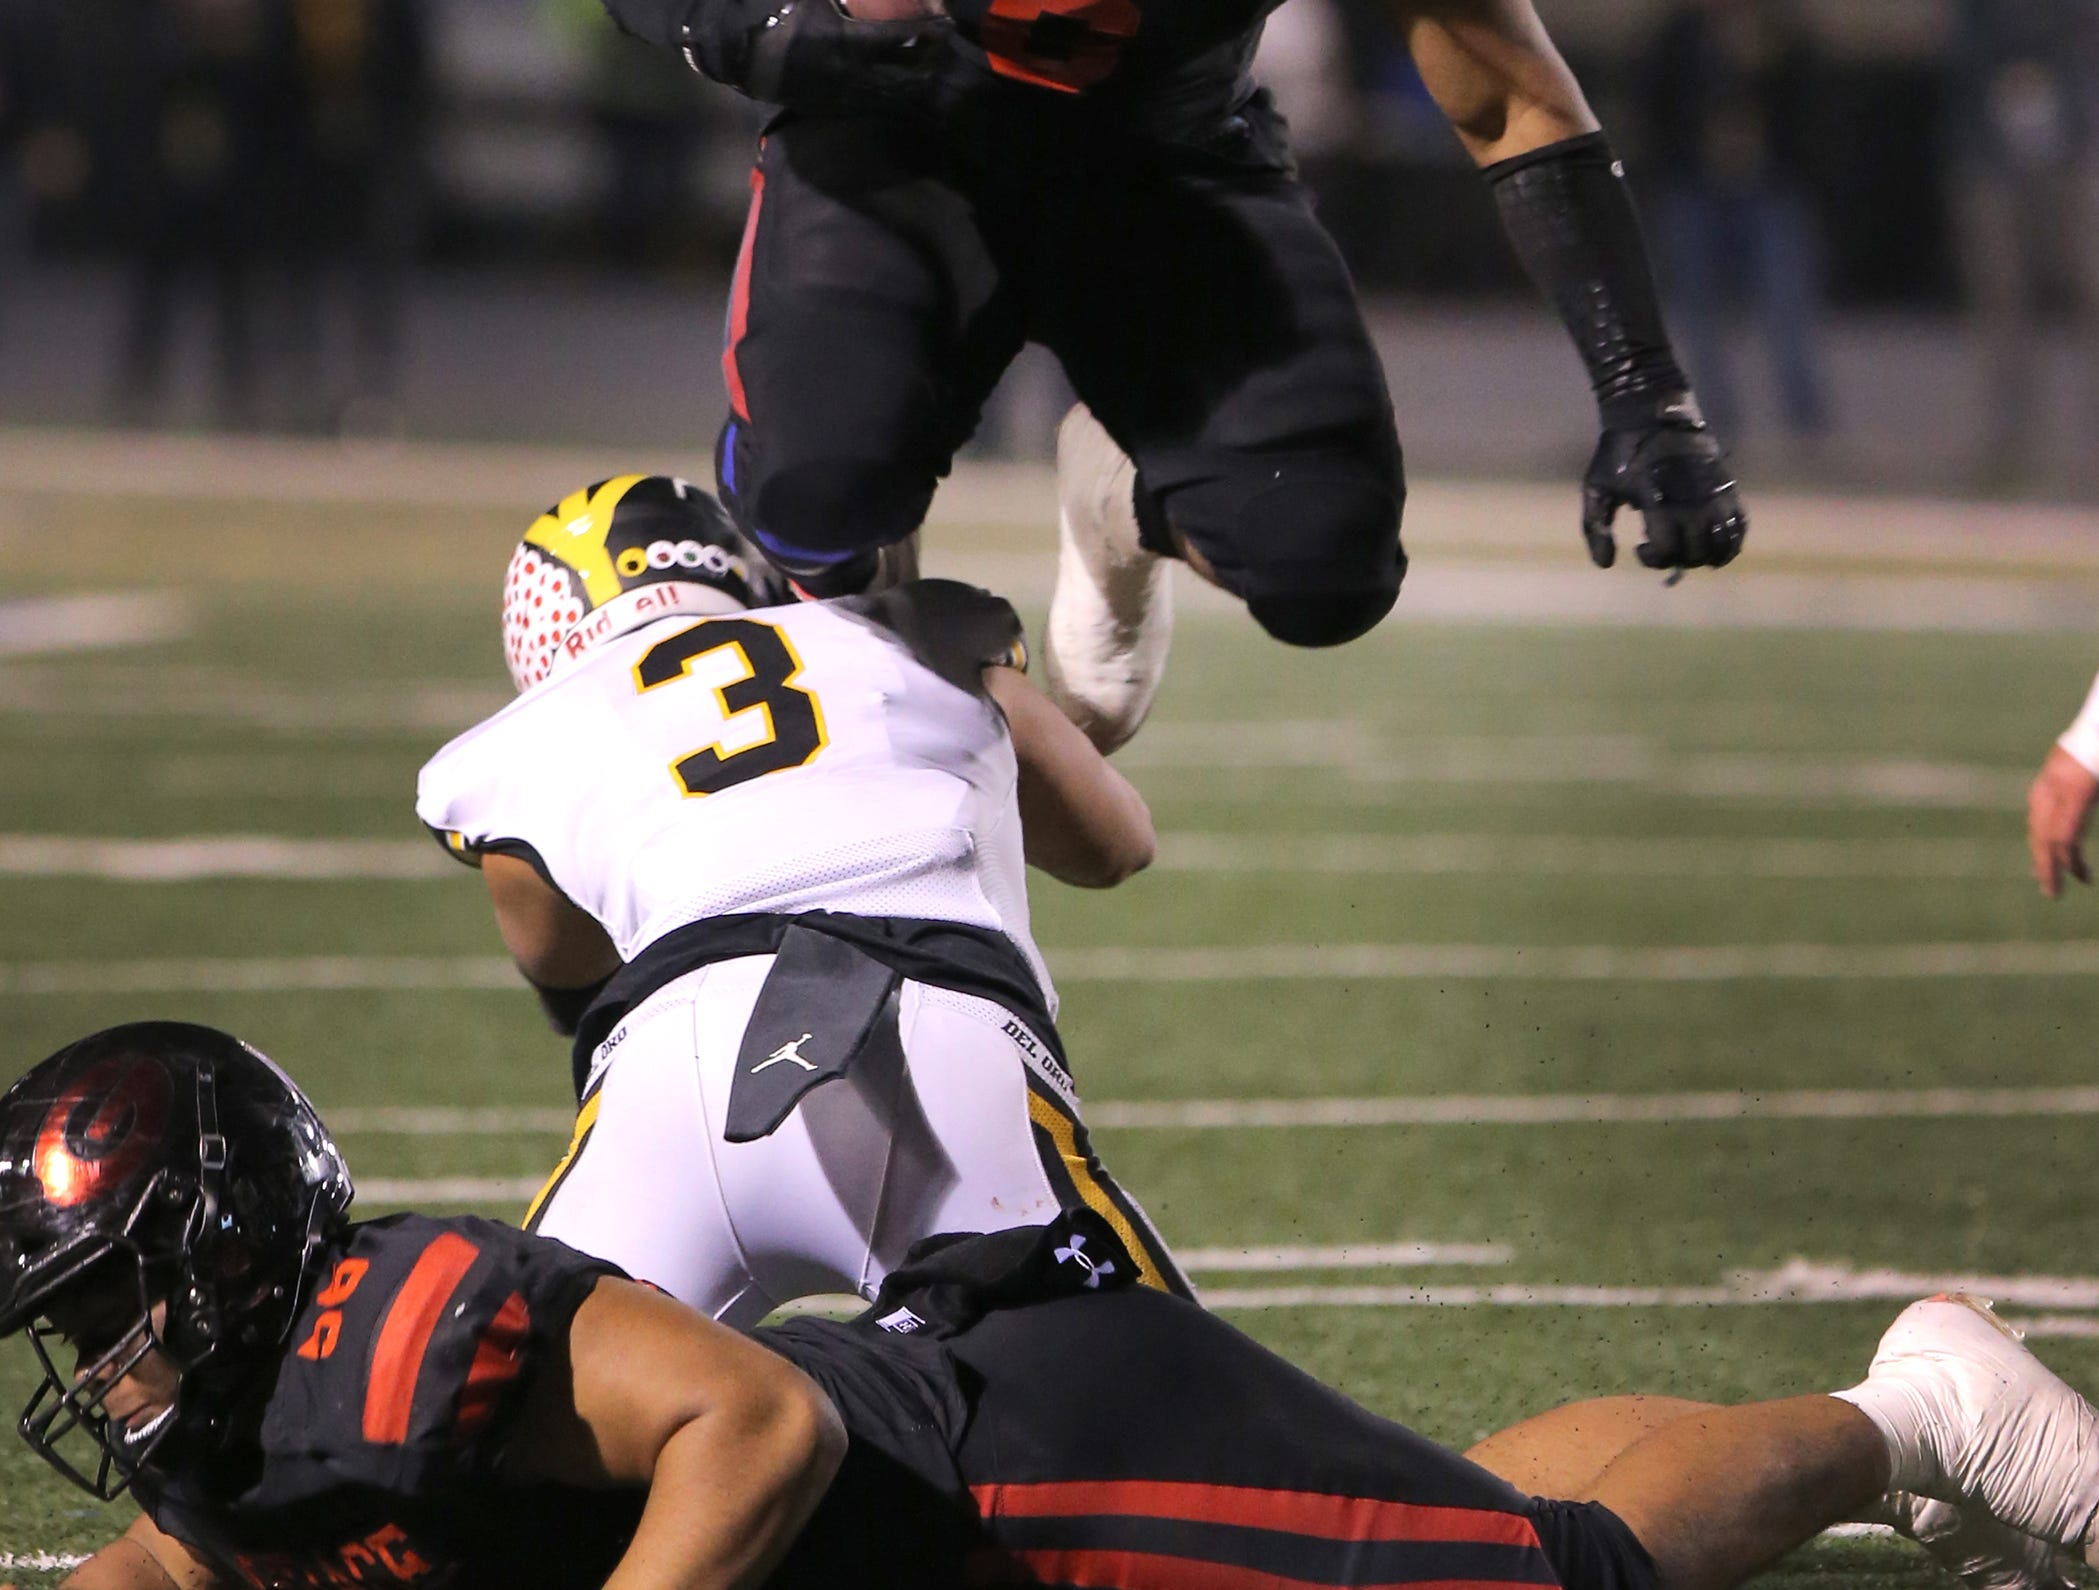 Grace Brethren's Lontrelle Diggs hurdles over Del Oro's Dante Pericin during the Lancers' 21-14 victory in the Division 2AA state championship game Friday at Cerritos College.